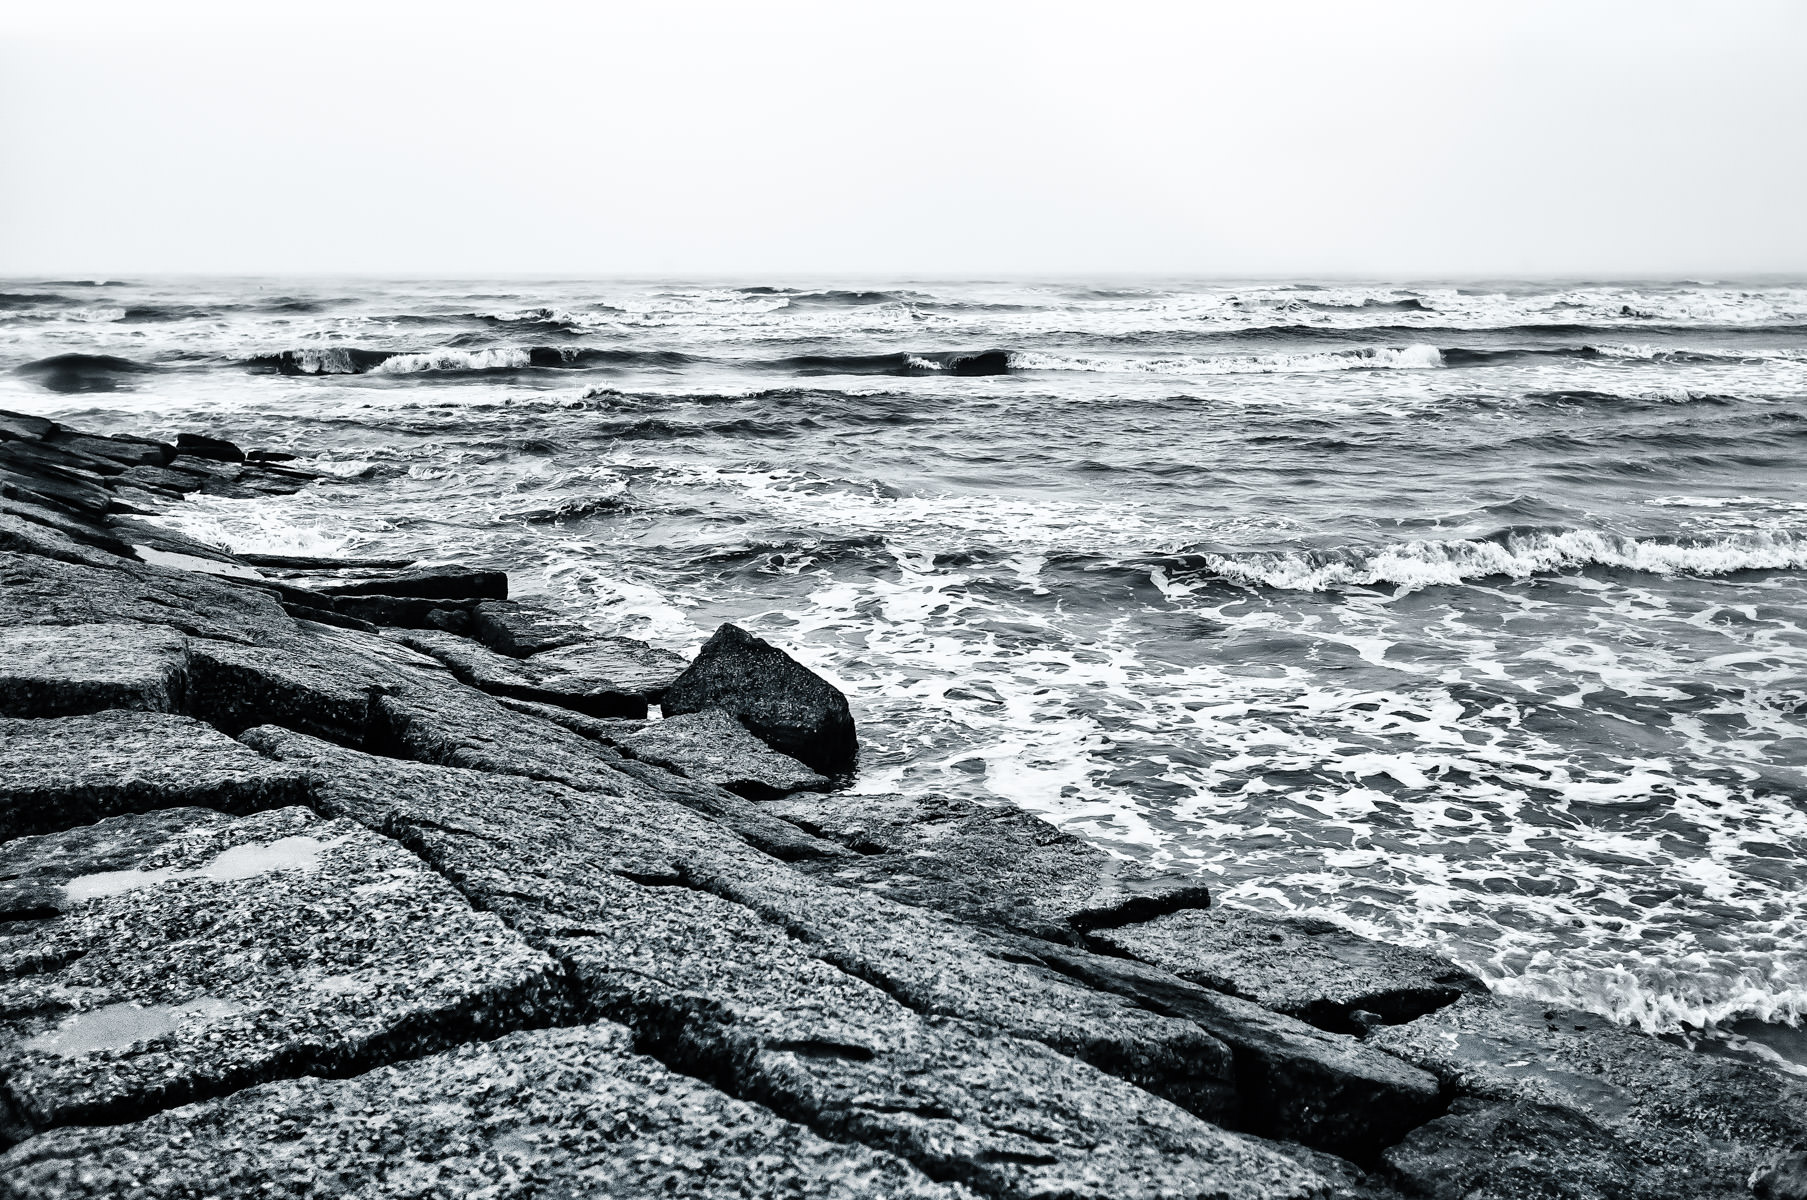 Waves crash against a granite groyne on an overcast day at Galveston Island, Texas.